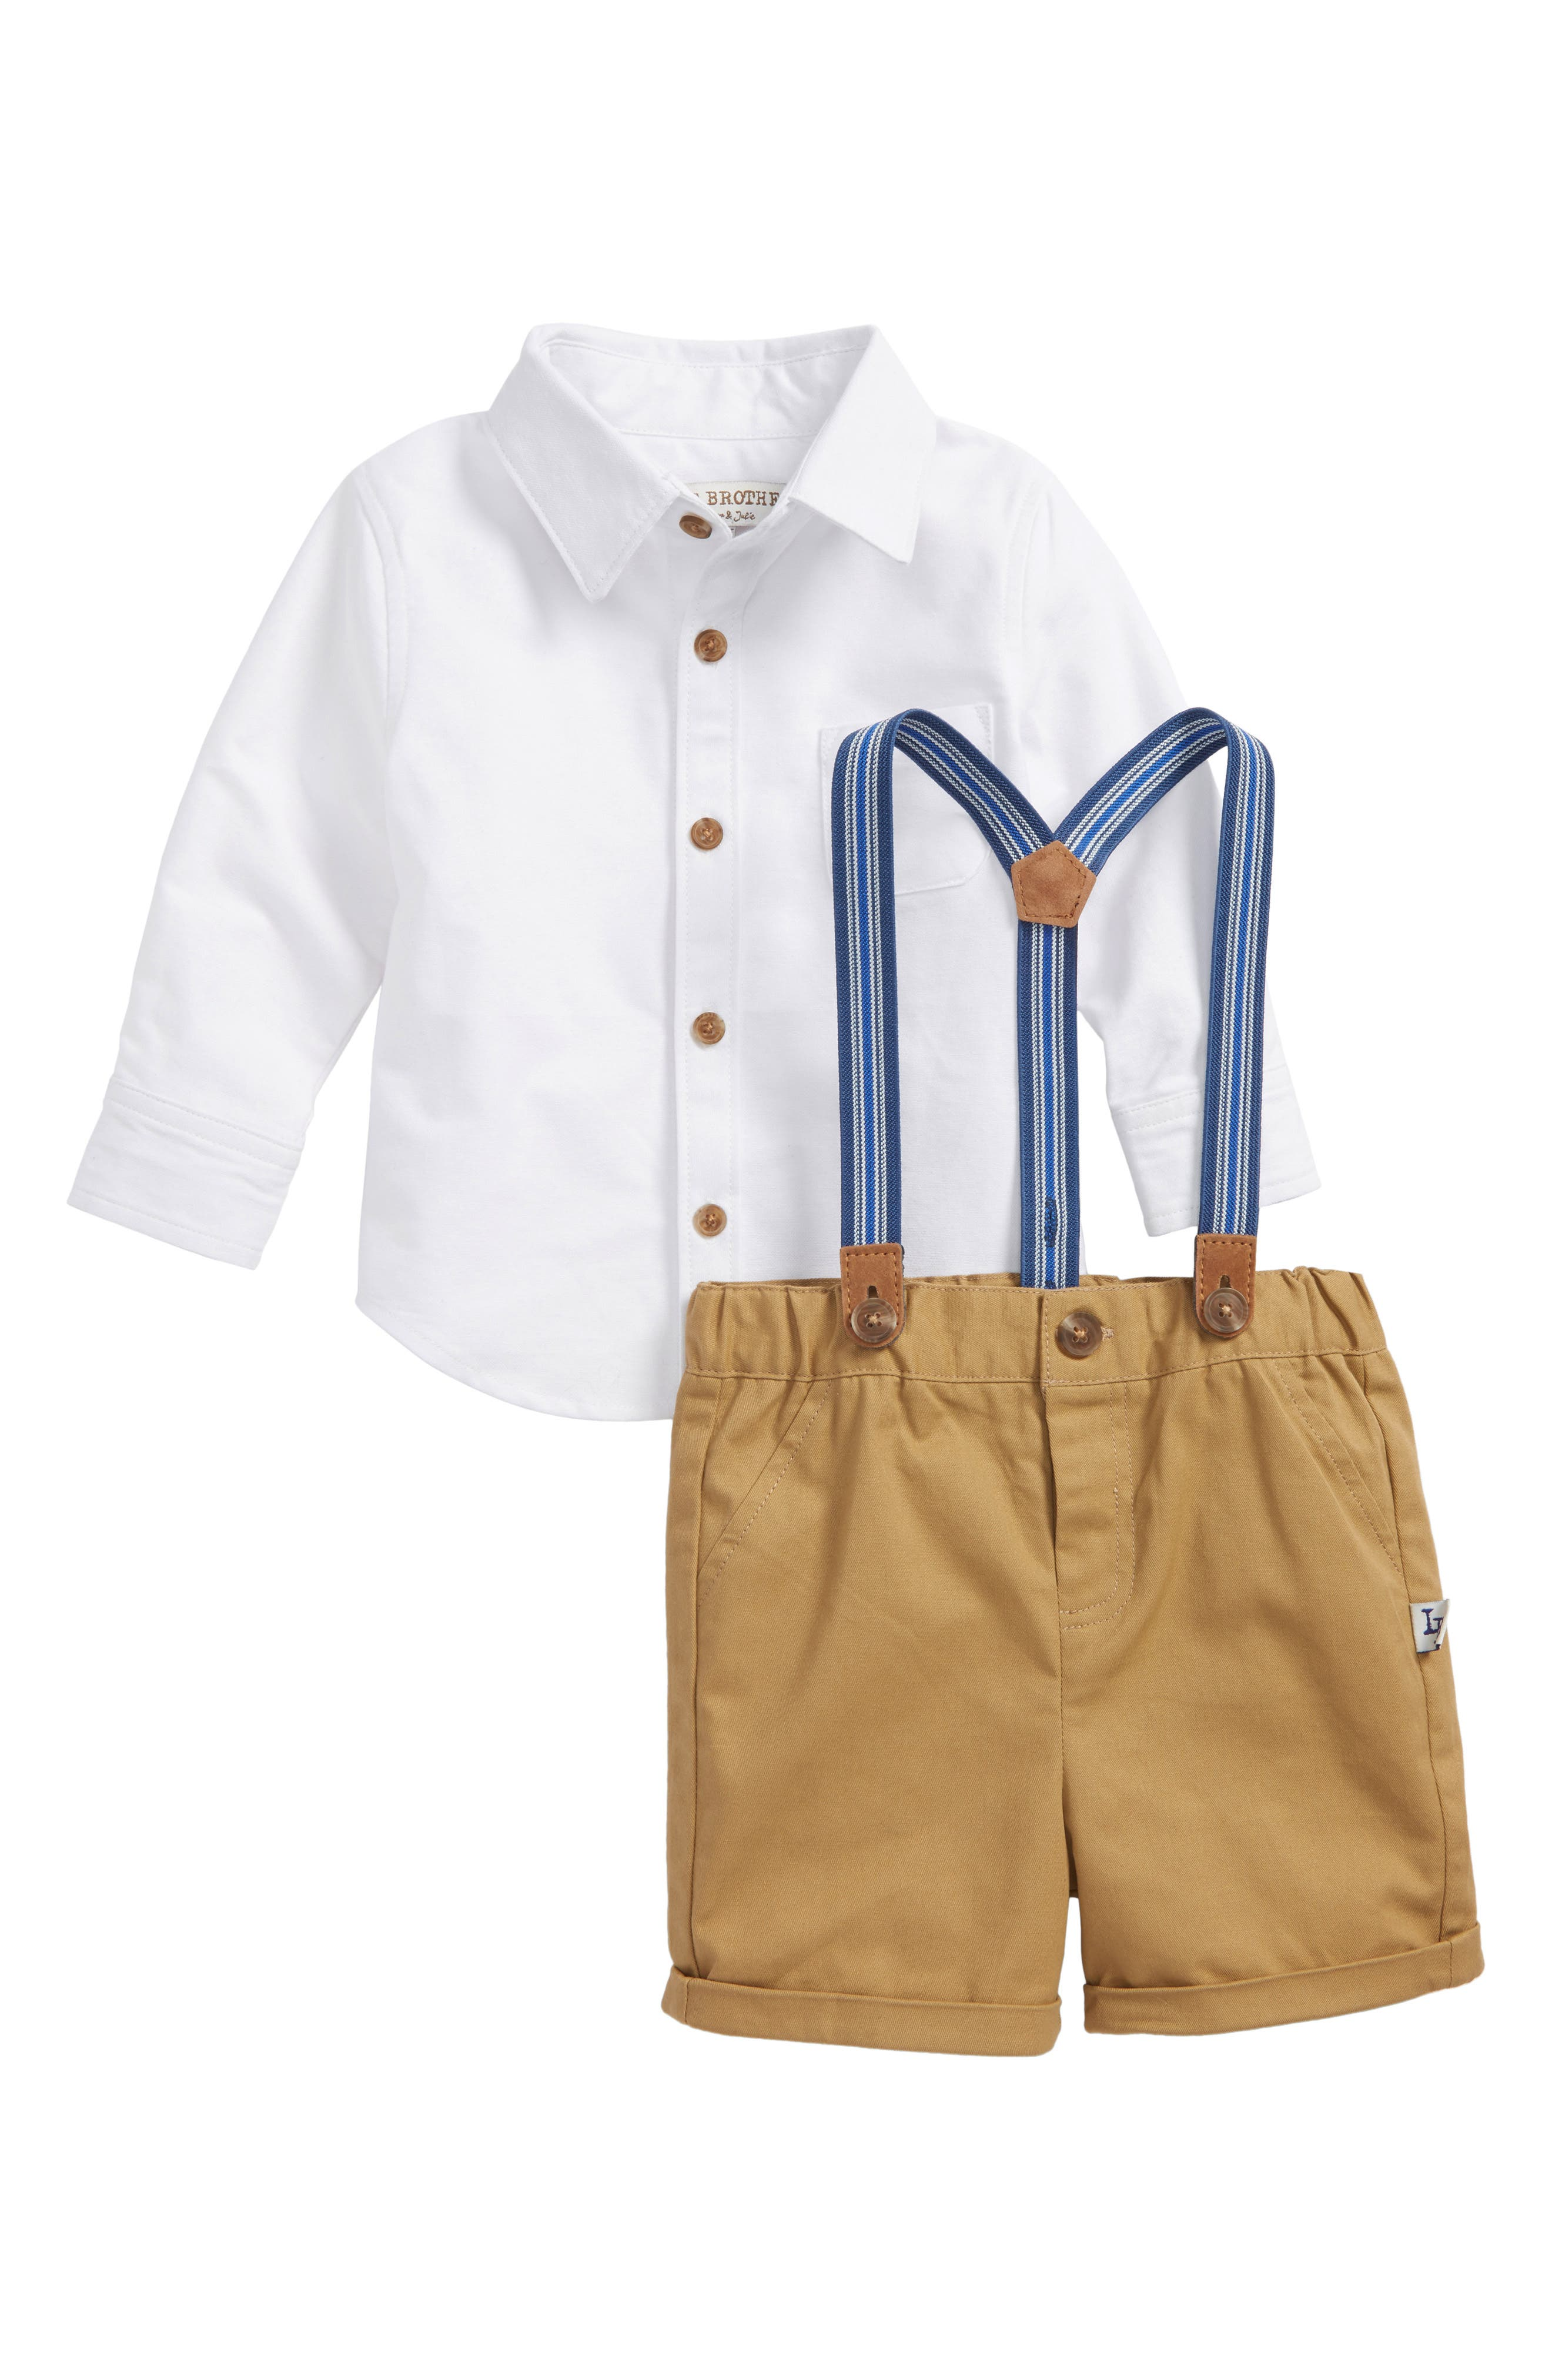 Main Image - Little Brother by Pippa & Julie Shirt & Suspender Shorts Set (Baby Boys)